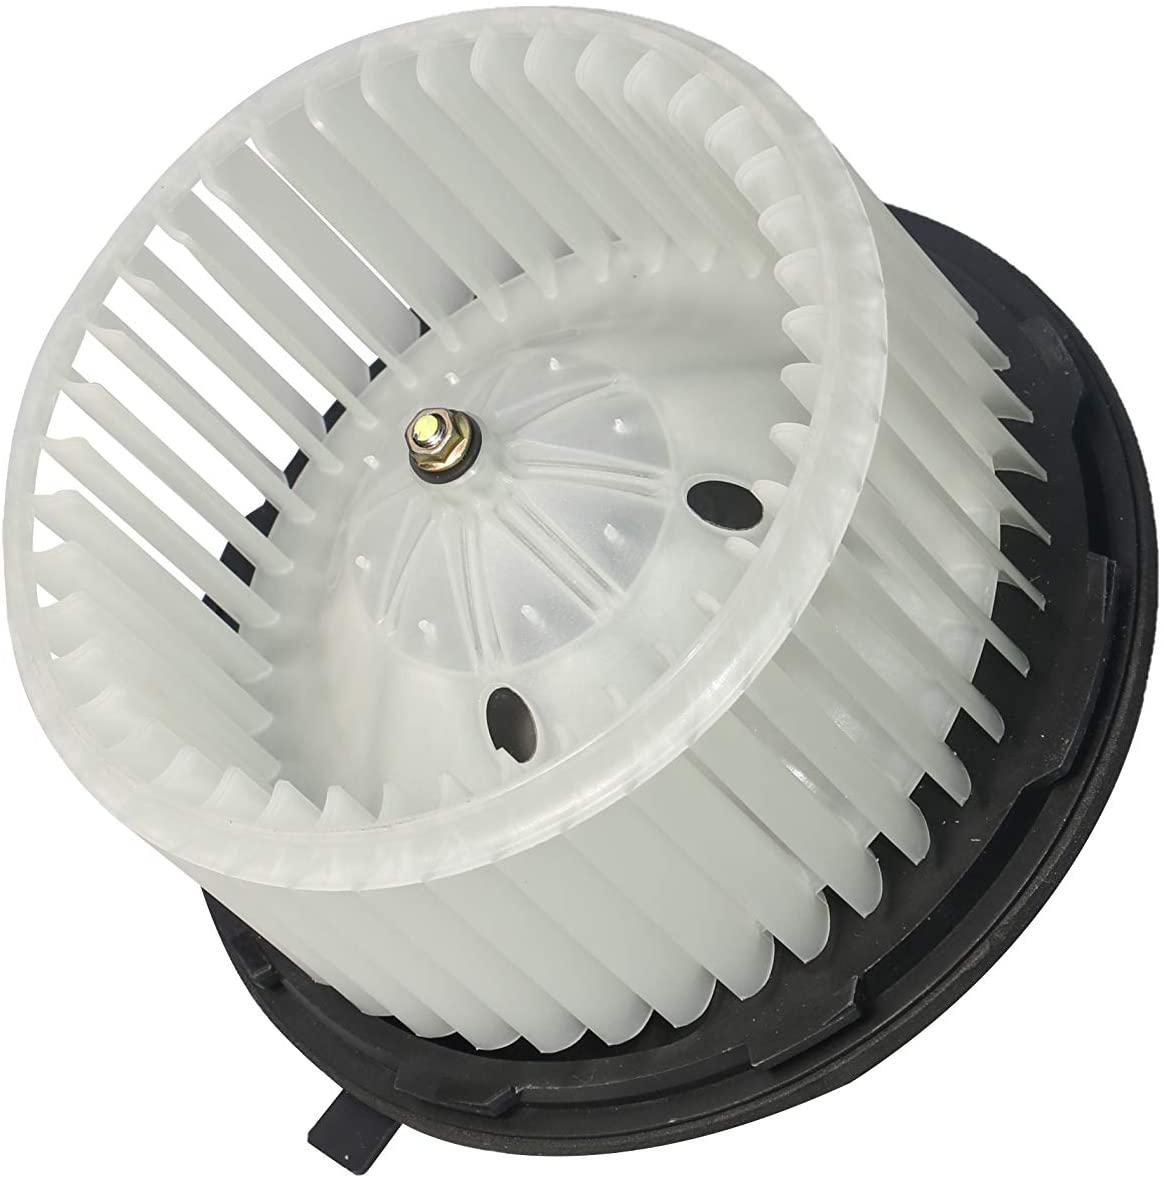 AC Heater Blower Motor - Compatible with Chevy, GMC & Other GM Vehicles - Silverado, Tahoe, Avalanche, Suburban, Escalade, Sierra, Yukon, H2 - Replaces 15-81683, 22741027, 20760618, 700164 - ATC